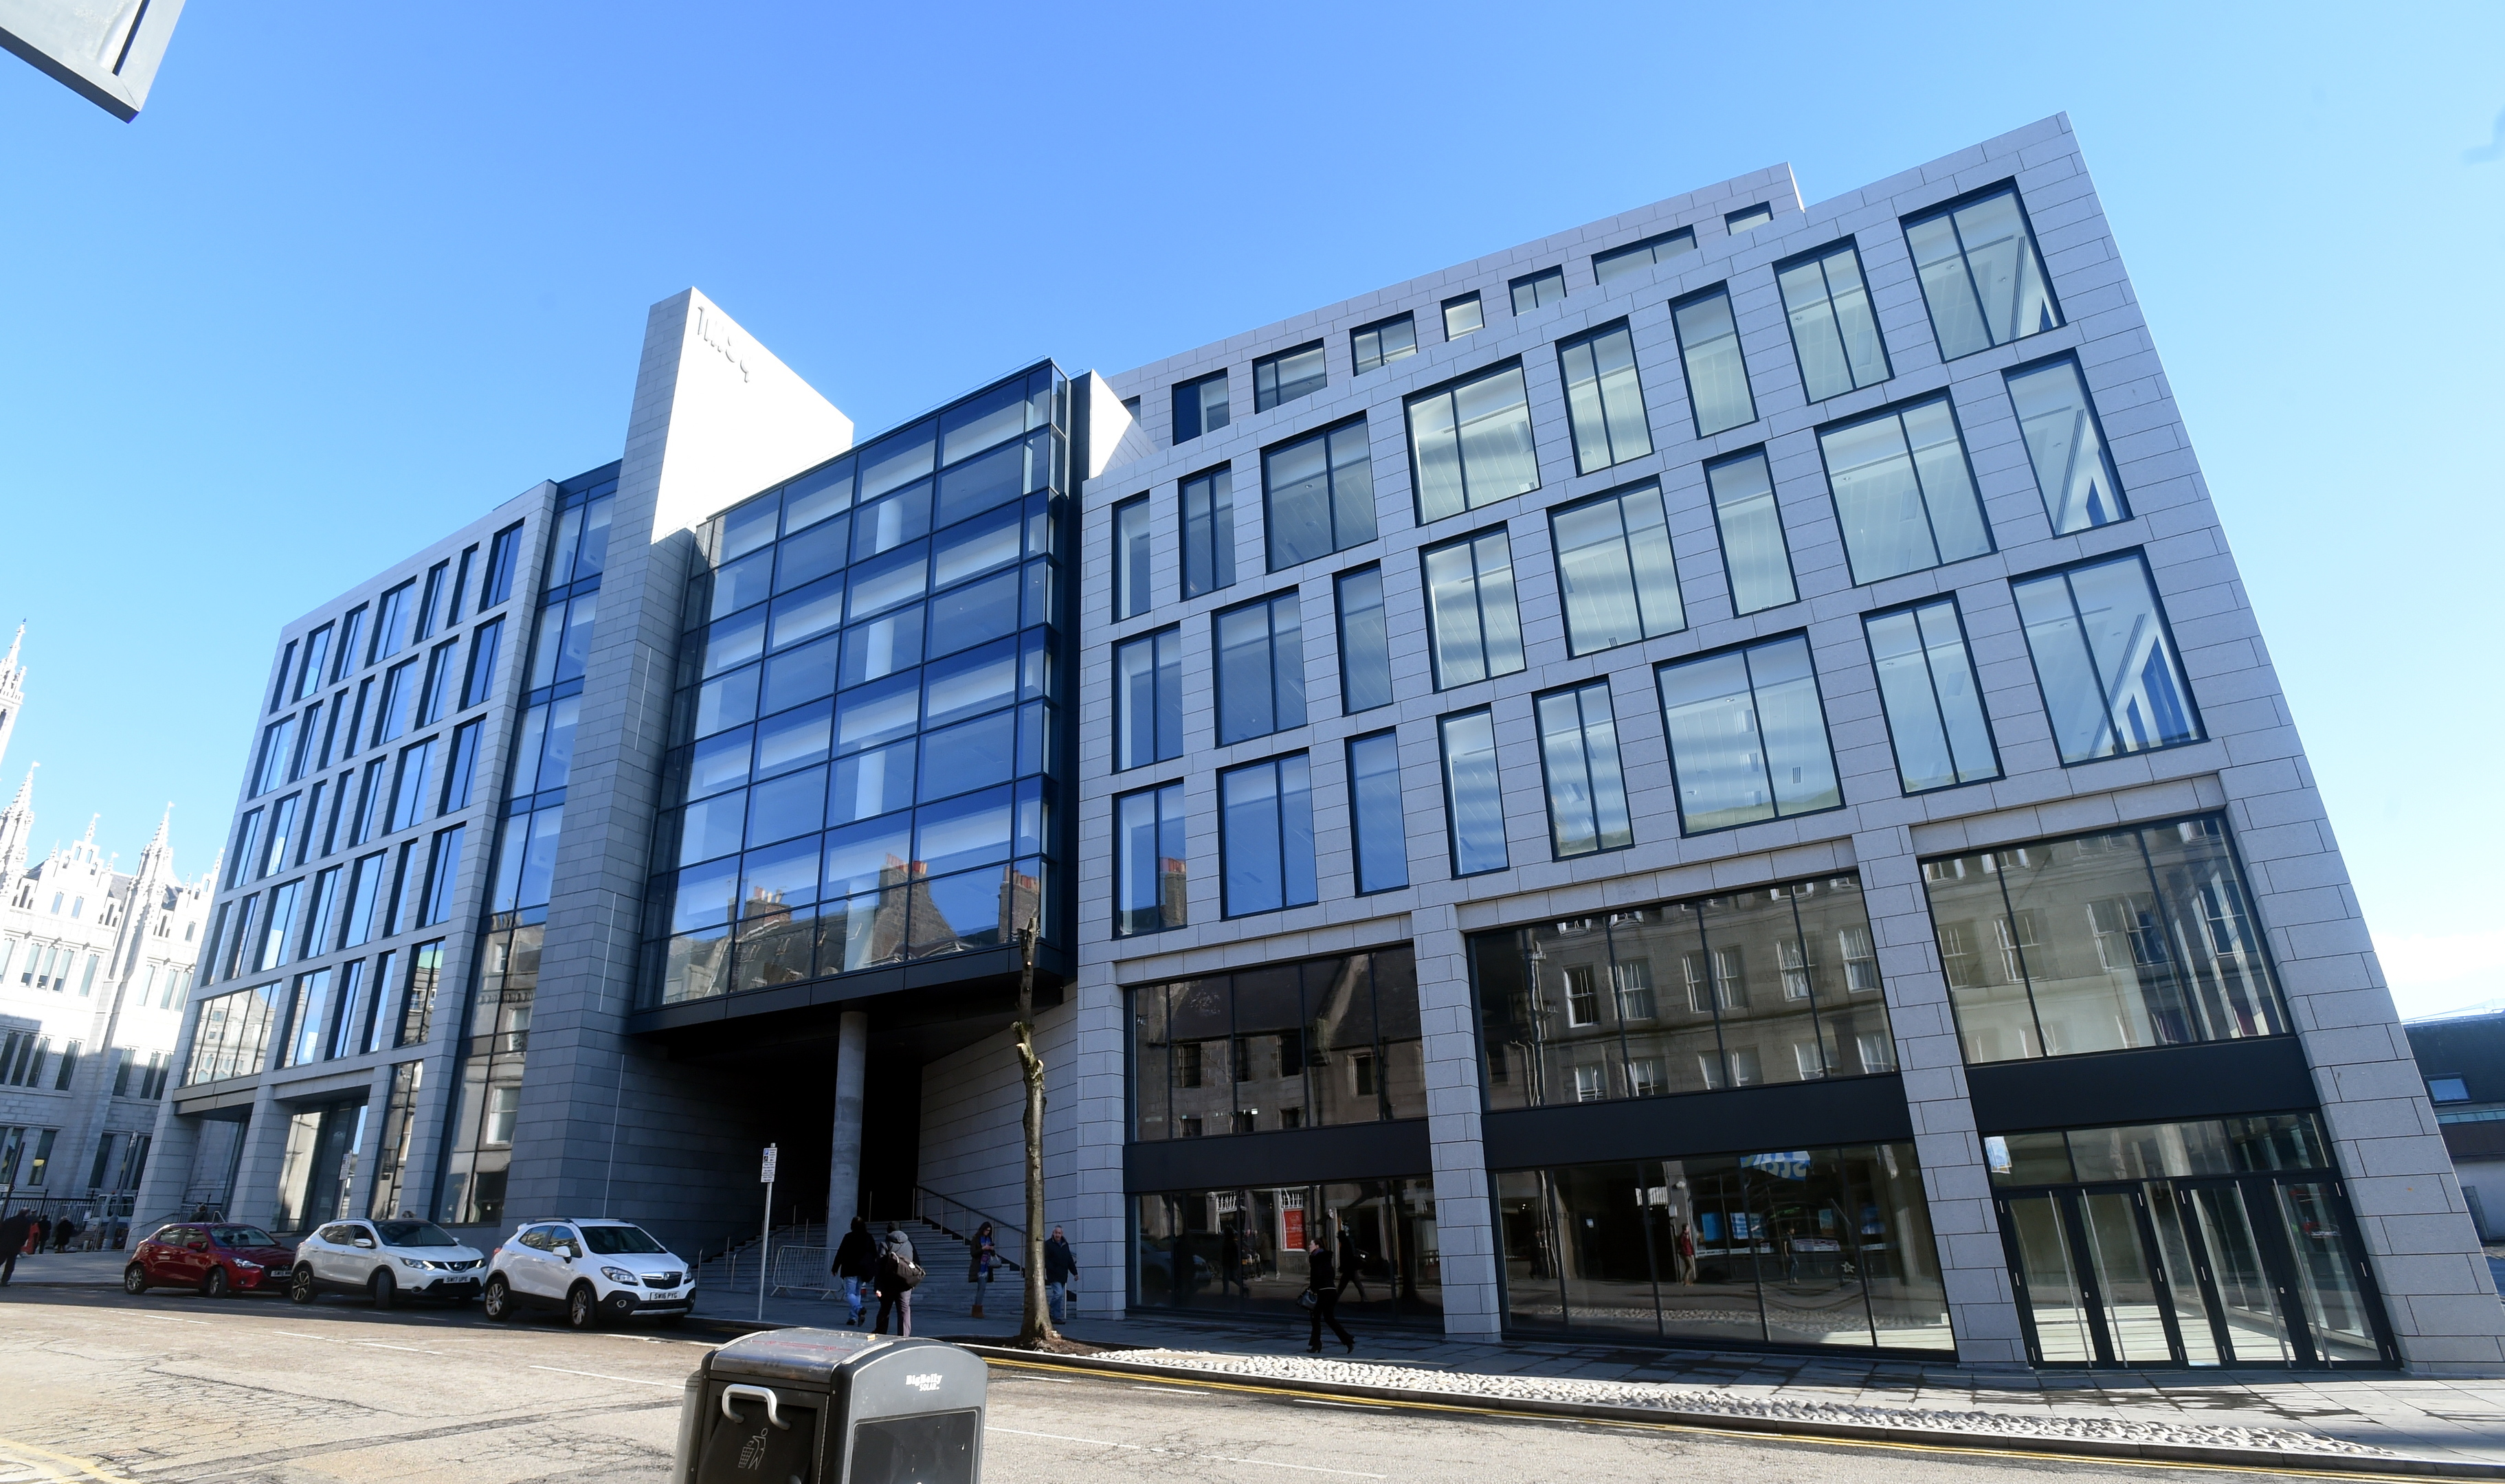 The new offices in Marischal Square.